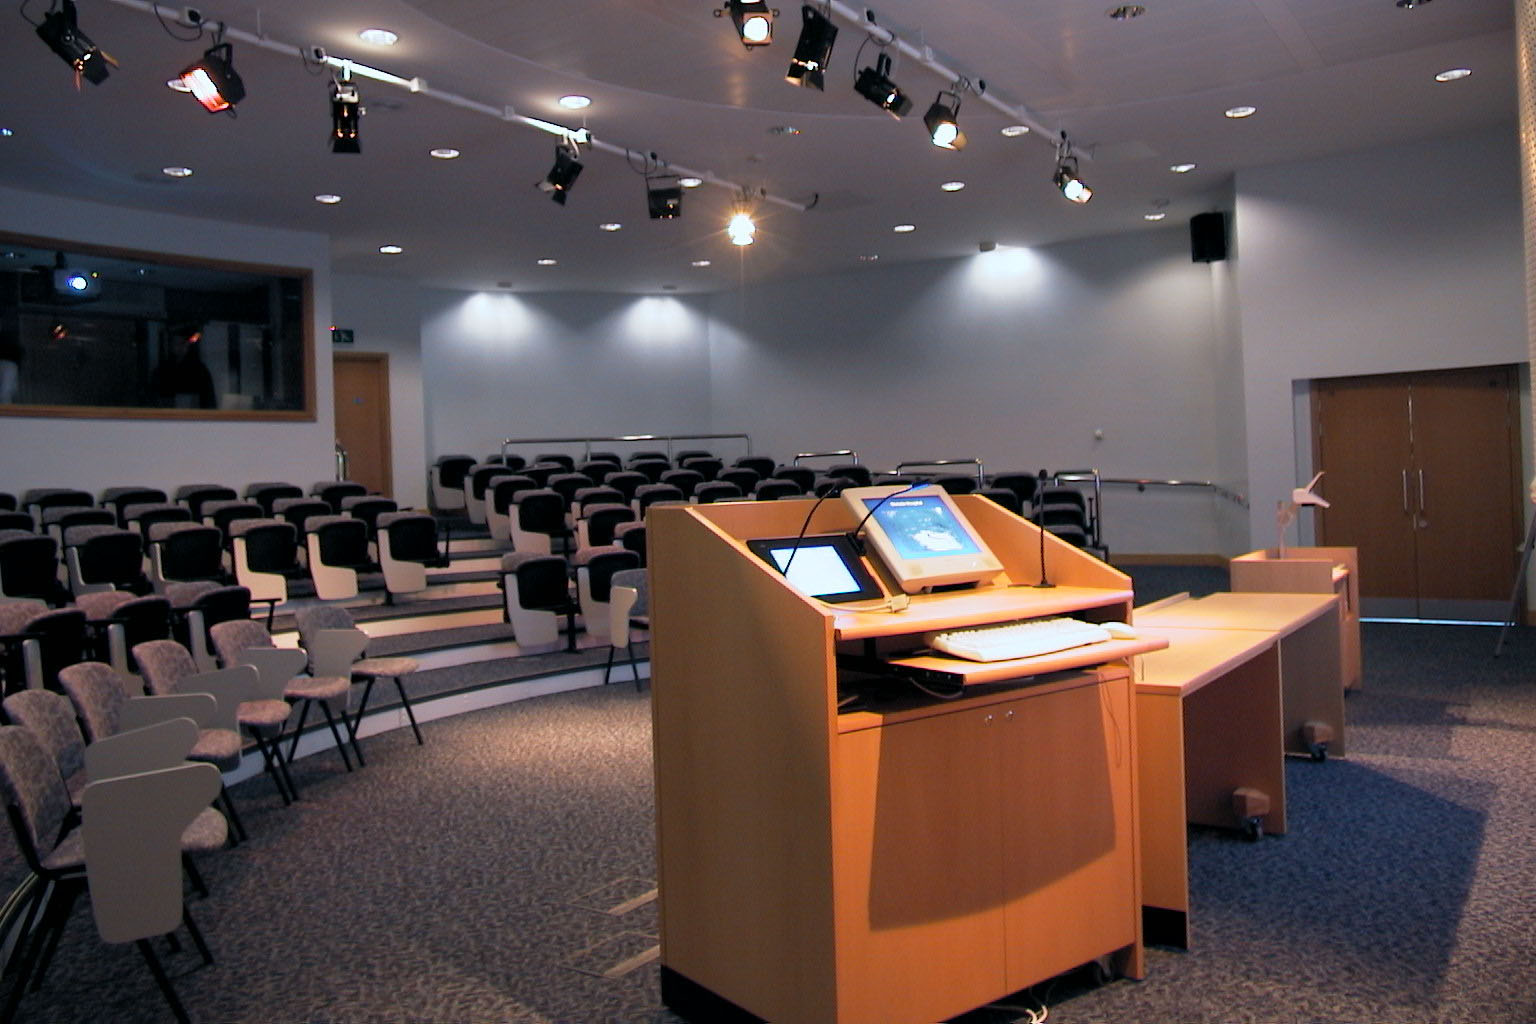 Christie Hospital conference facilities with lectern housing stage lighting and audio visual control